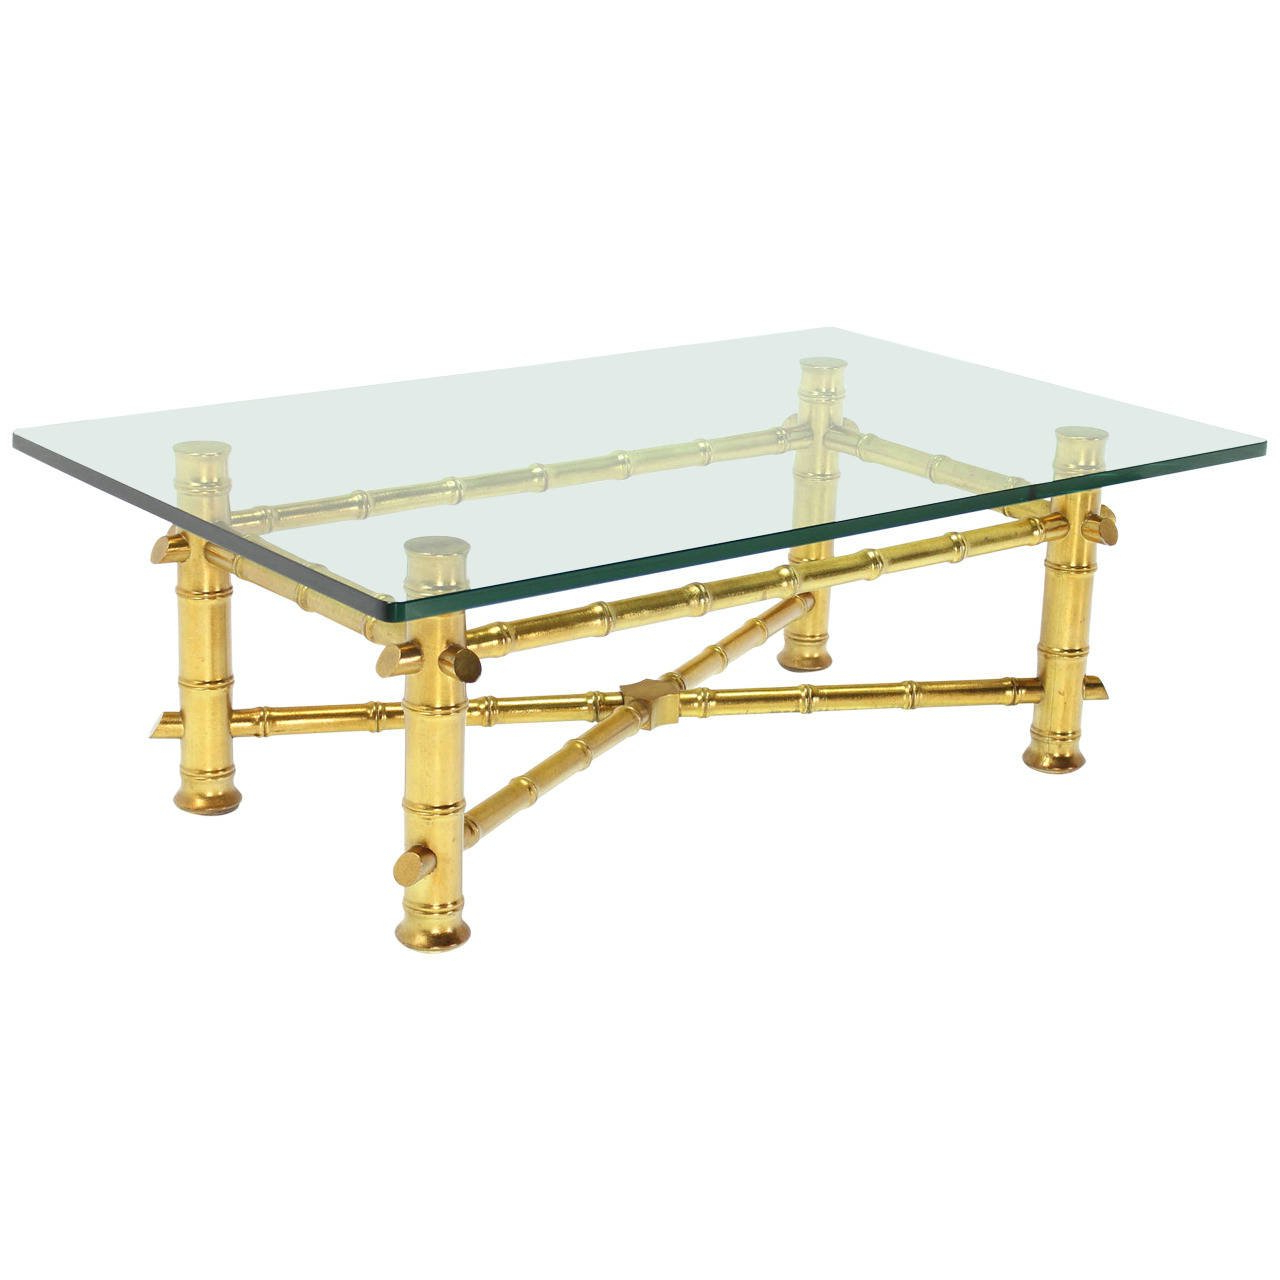 Well Known Gold Leaf Faux Bamboo Base Coffee Table With Thick Glass Top For Pertaining To Gold Leaf Collection Coffee Tables (View 18 of 20)